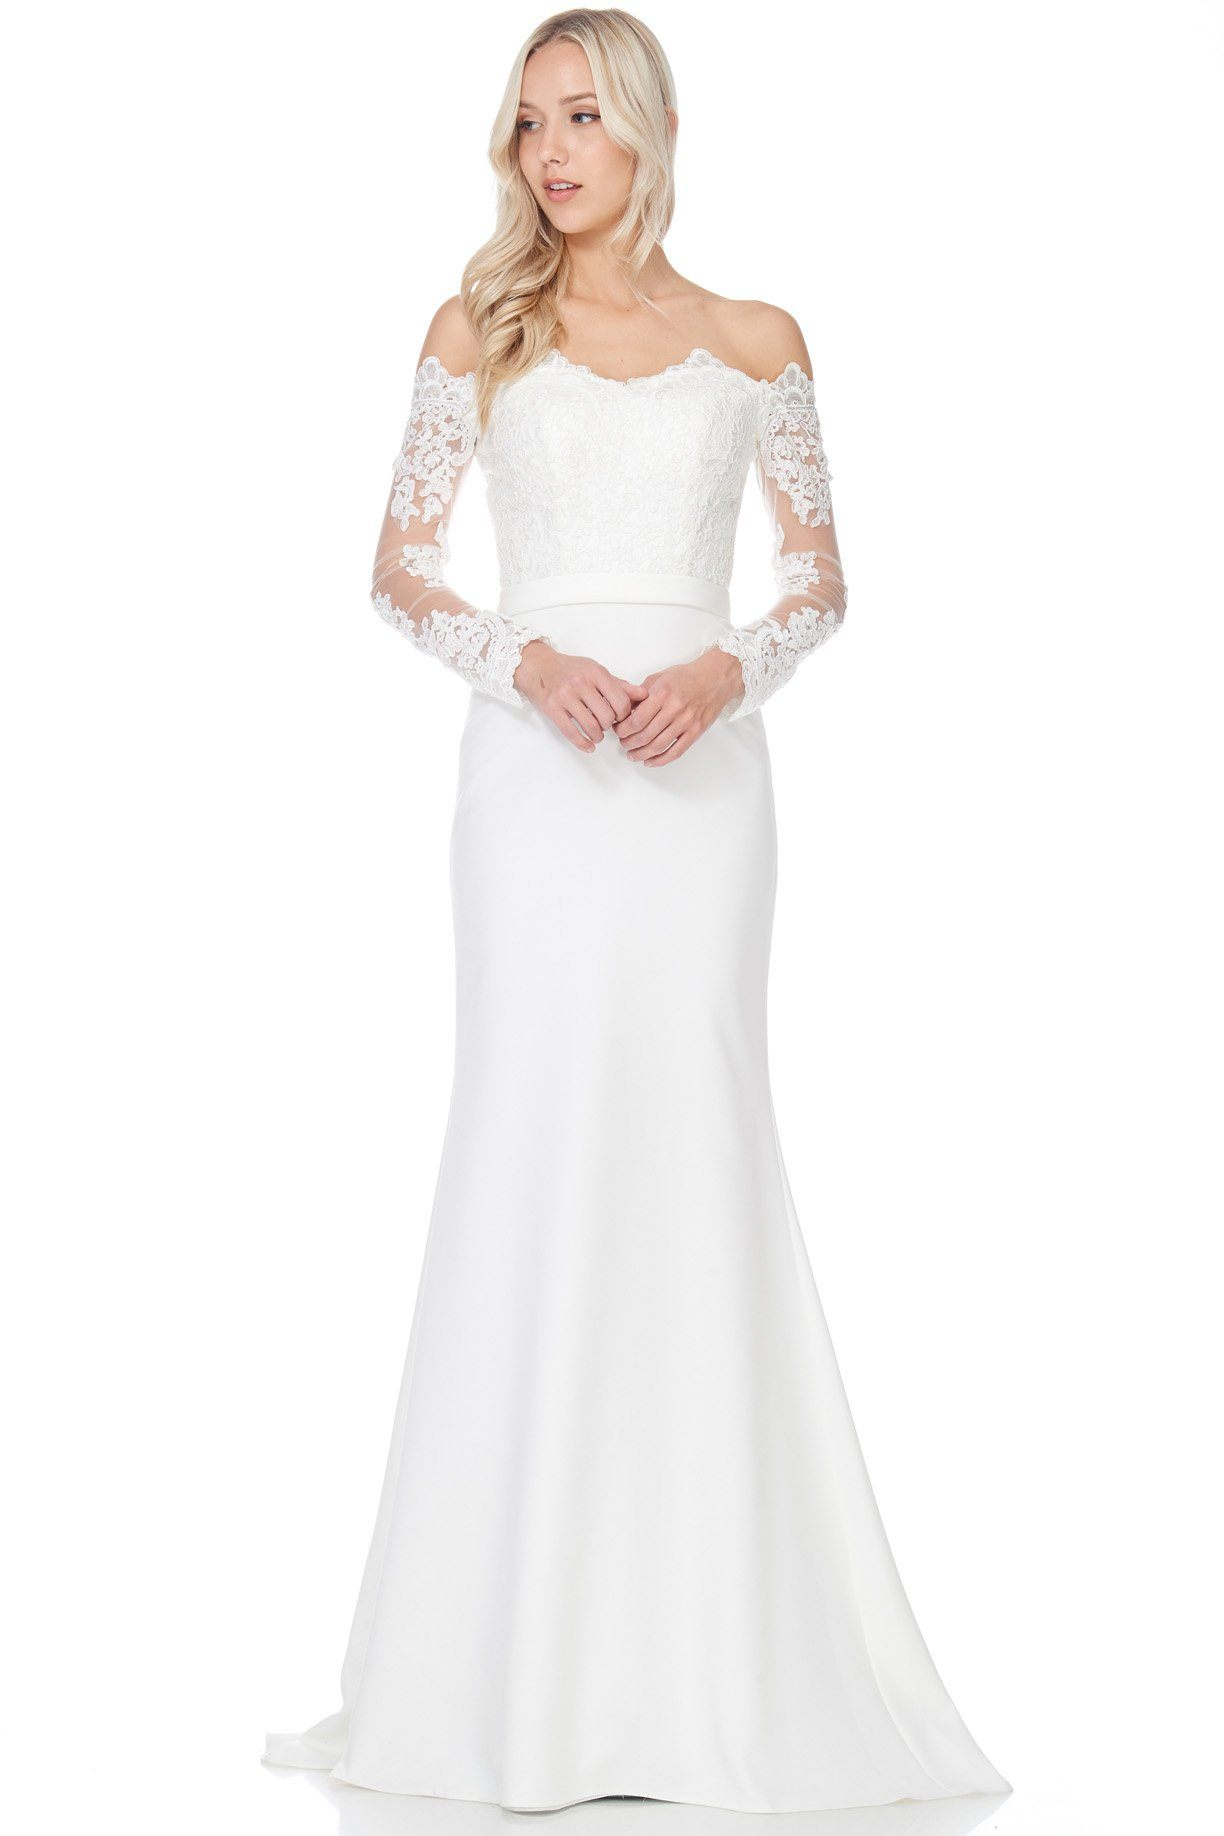 Simple informal casual wedding dresses for summer simply fab dress bc acw1601say i do with this elegant simple long sleeve lace wedding with fitted body a strapless off the shoulder lace bust casual wedding gown for junglespirit Images